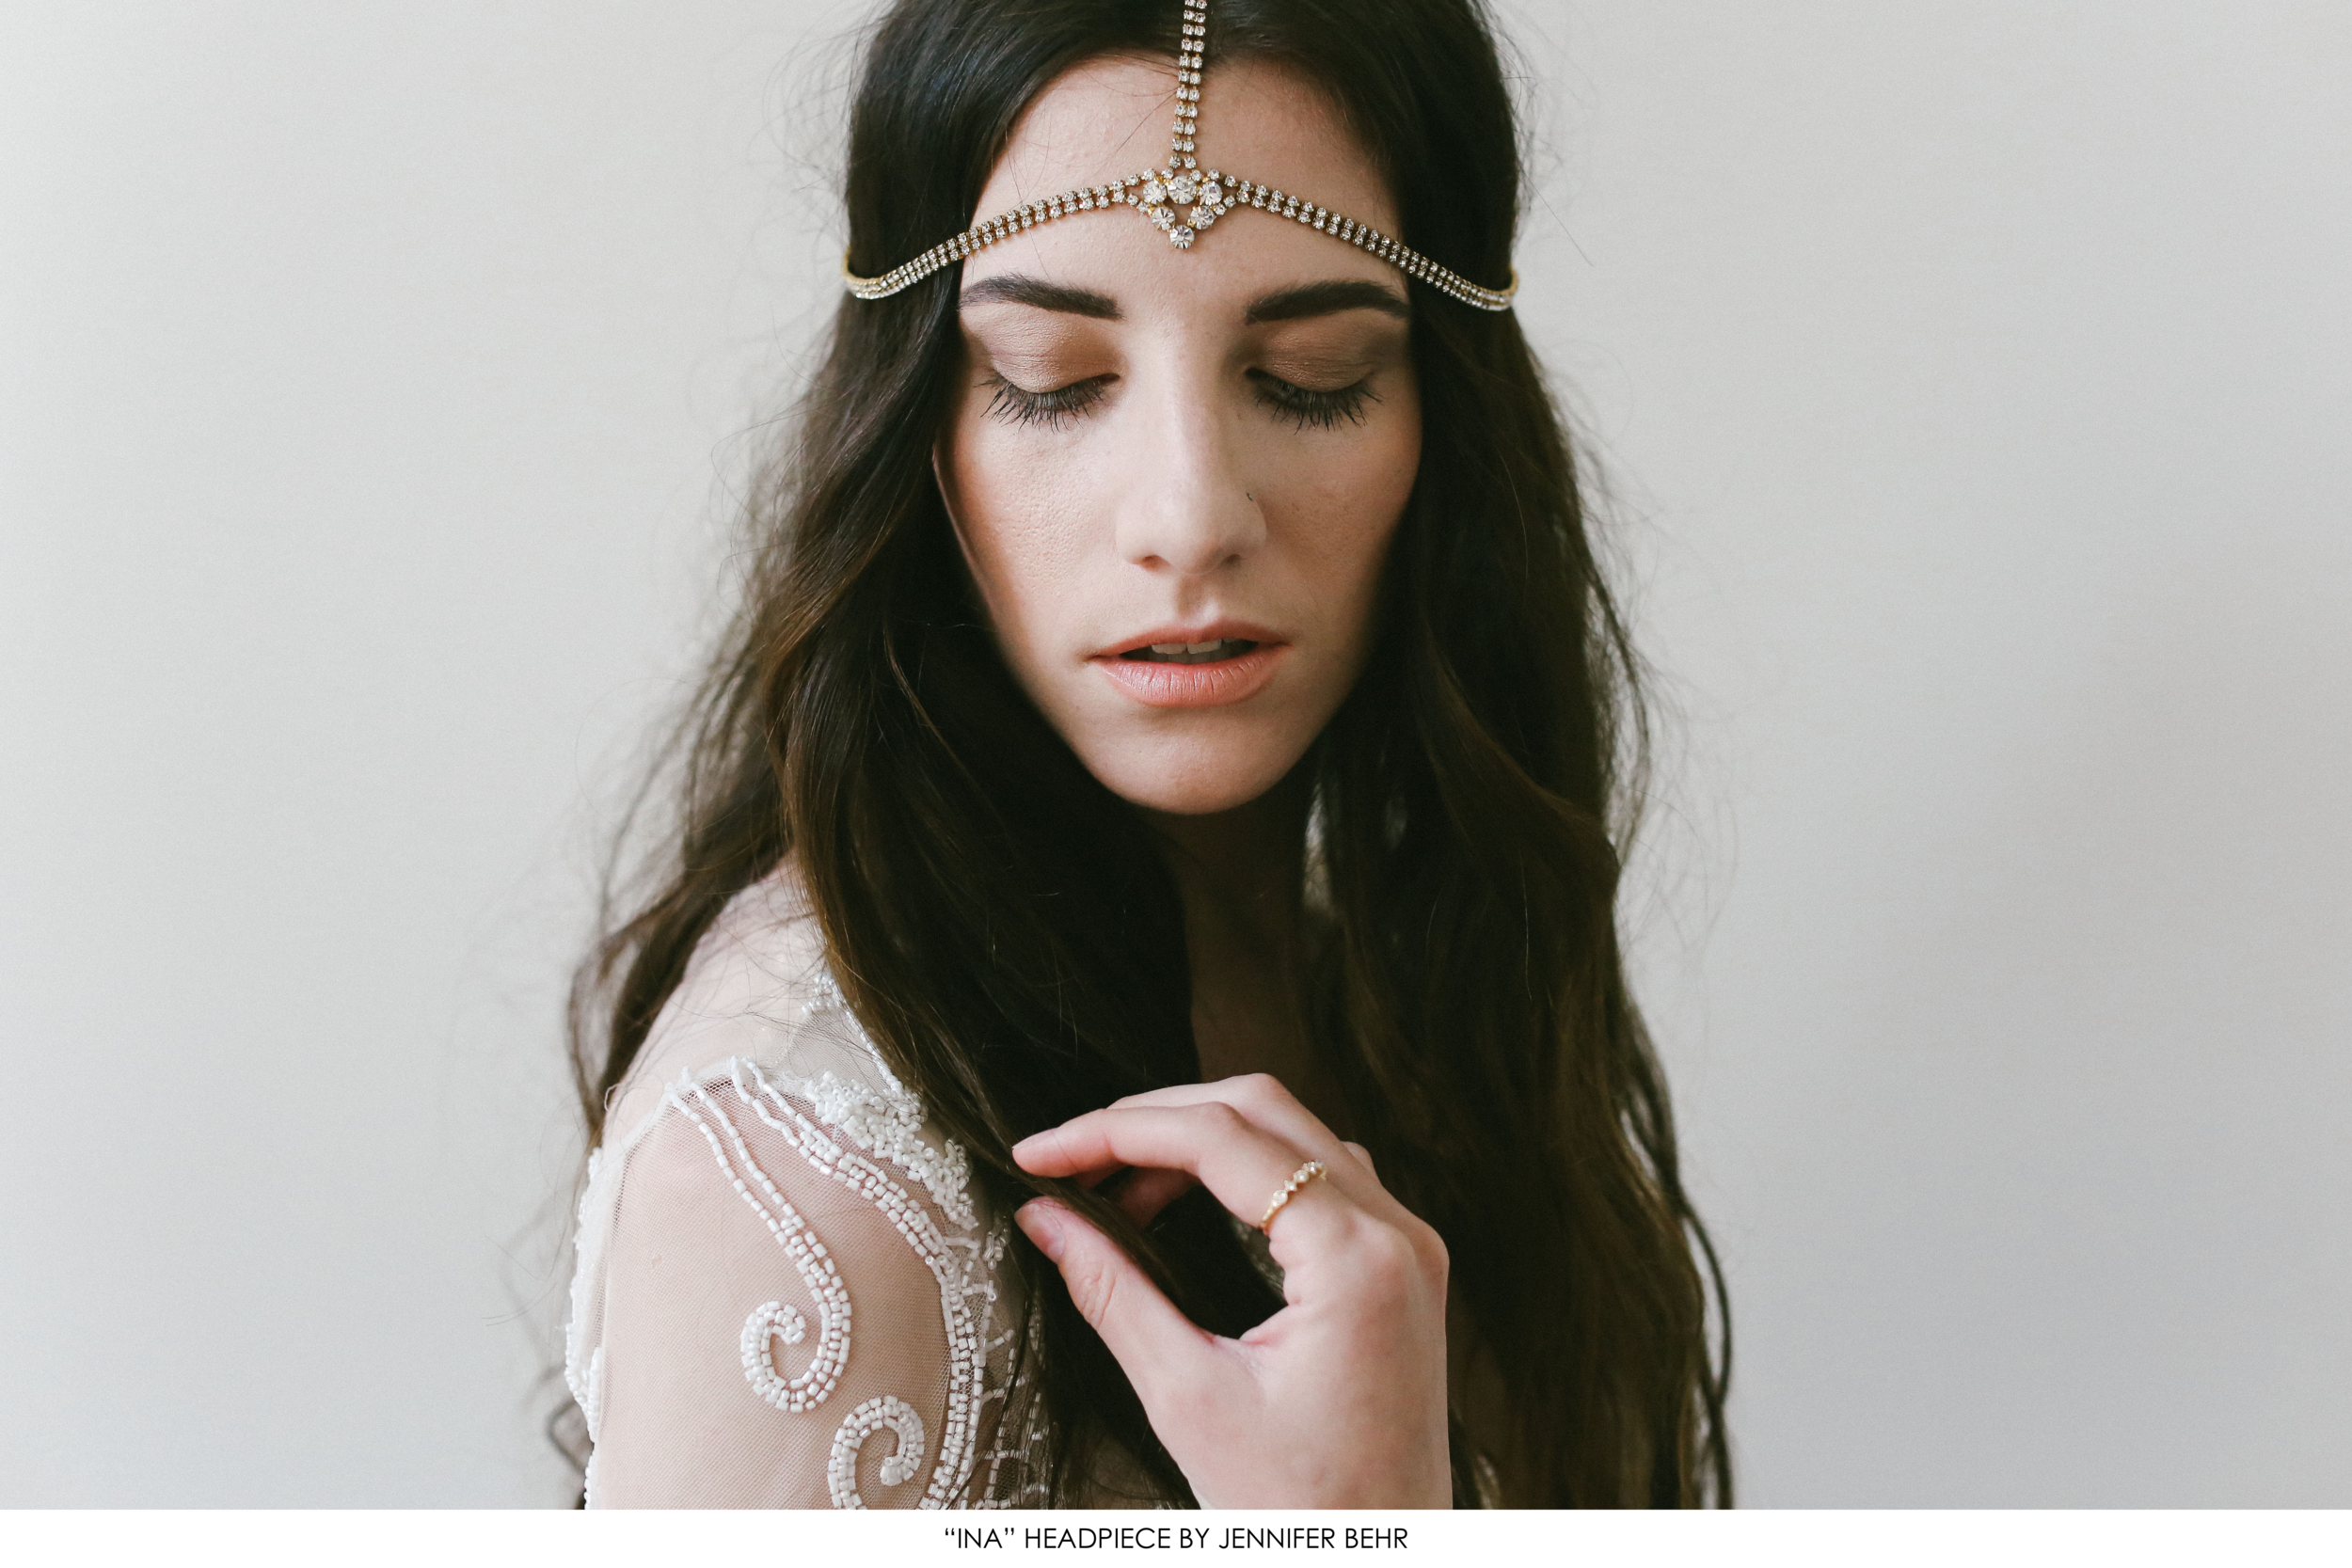 finery-boutique-huntsivlle-alabama-bohemian-wedding-shop-odylyne-the-ceremony-yolan-cris-bride-bridal-yaki-ravid-berta-calla-blanche-lookbook-cool-nashville-tenessee-alyssa-jennifer-behr-headpiece